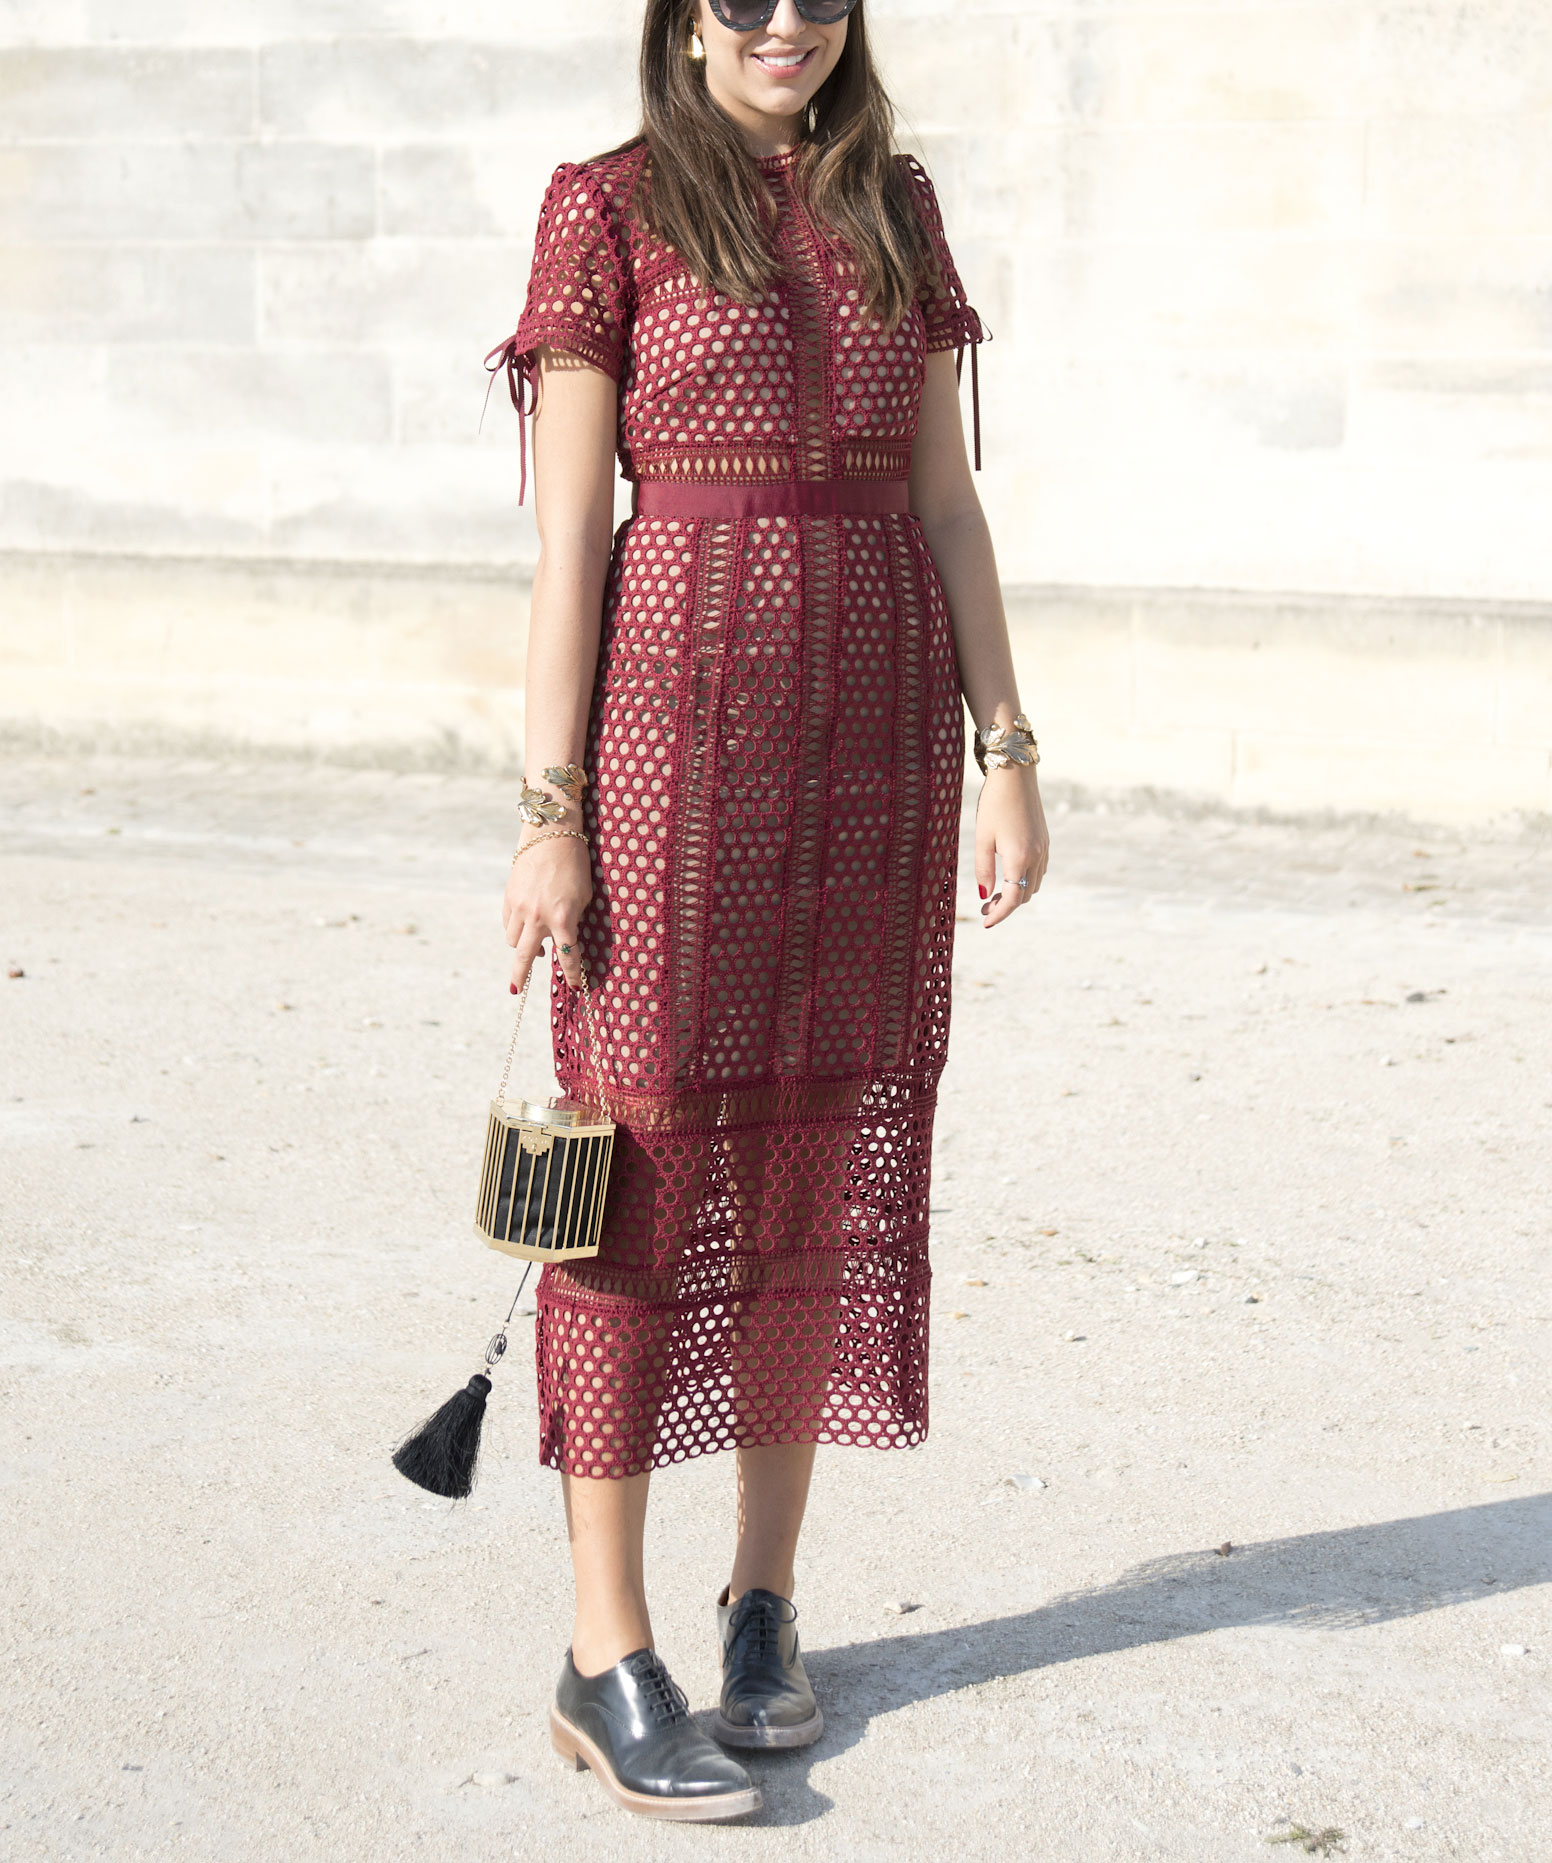 Style with a Dressy Dress